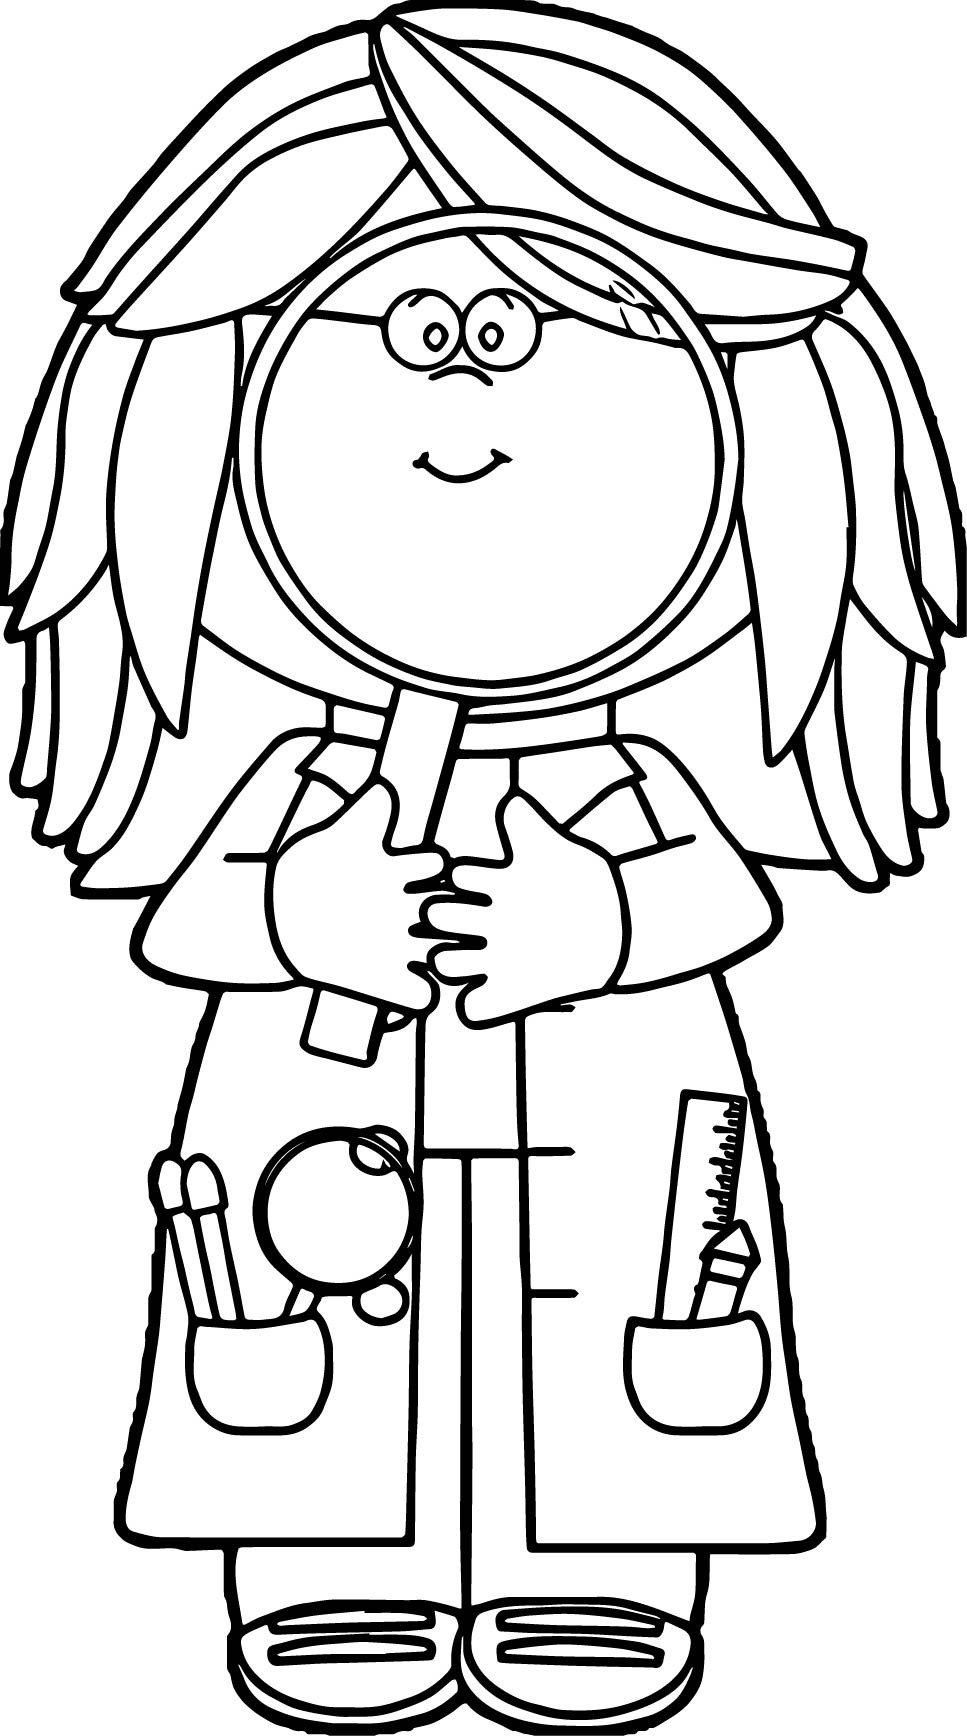 Scientist Coloring Page